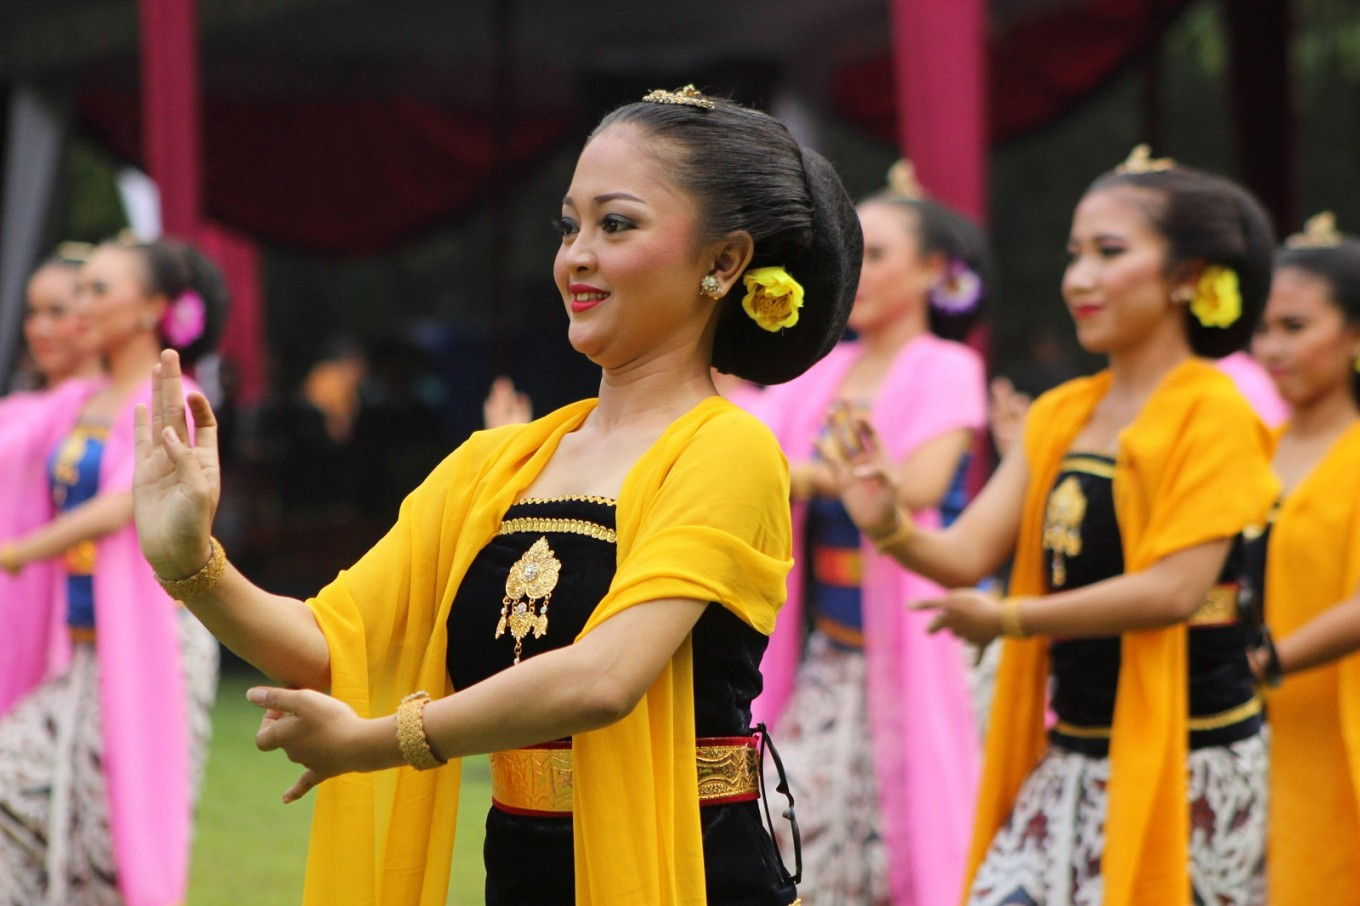 A performance of the Lengger Dance from Banyumas, Central Java, during the opening event of Solo Menari on April 29.